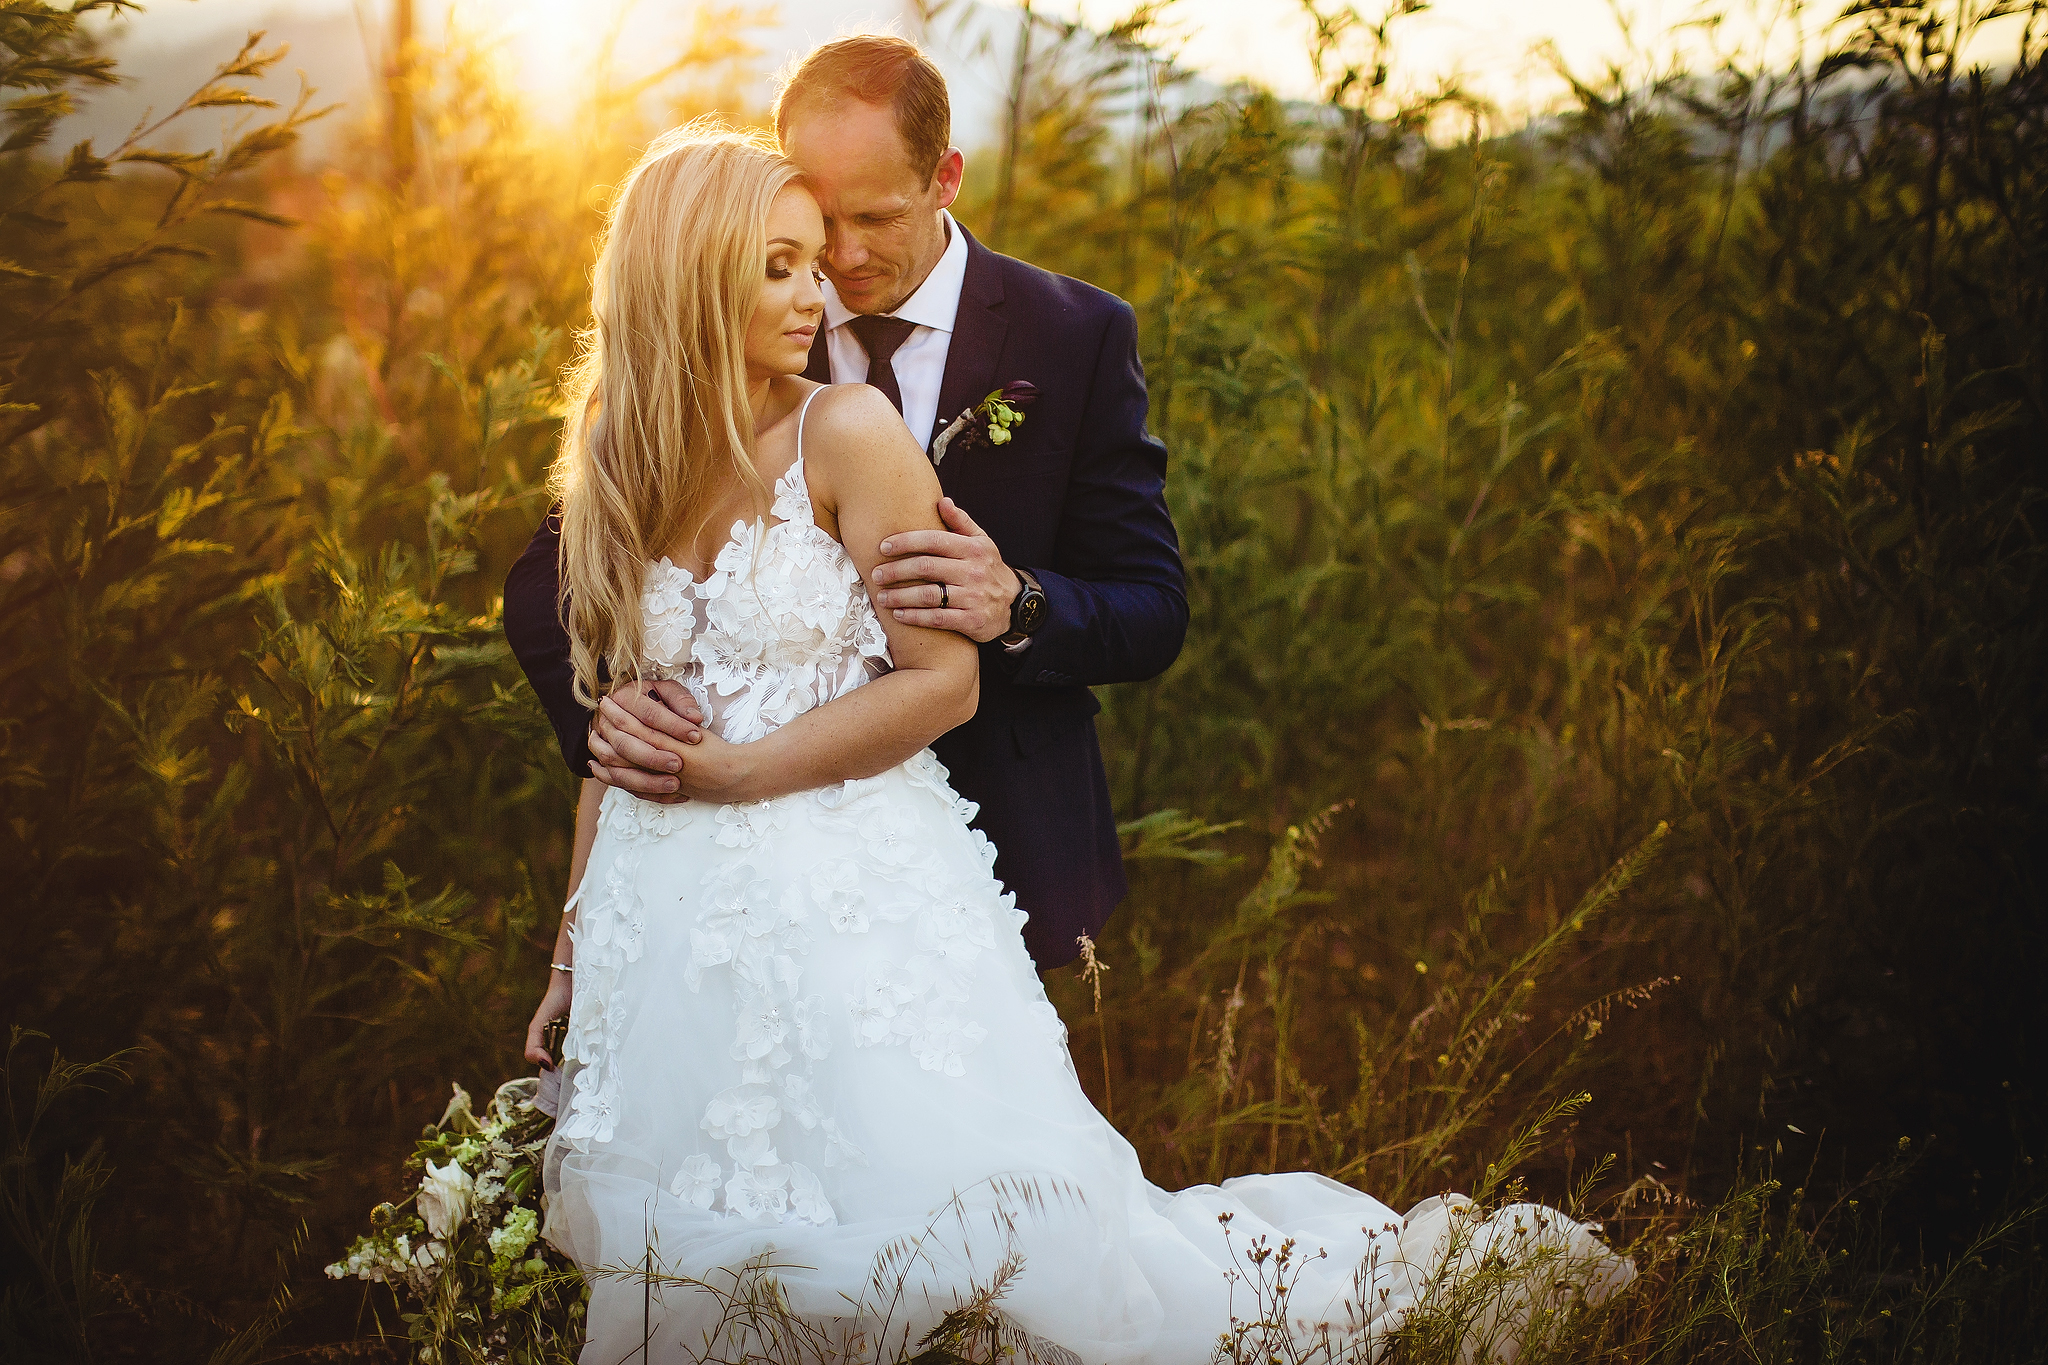 Couple portrait amidst foliage and afternoon sun - photo by Ruan Redelinghuys Photography